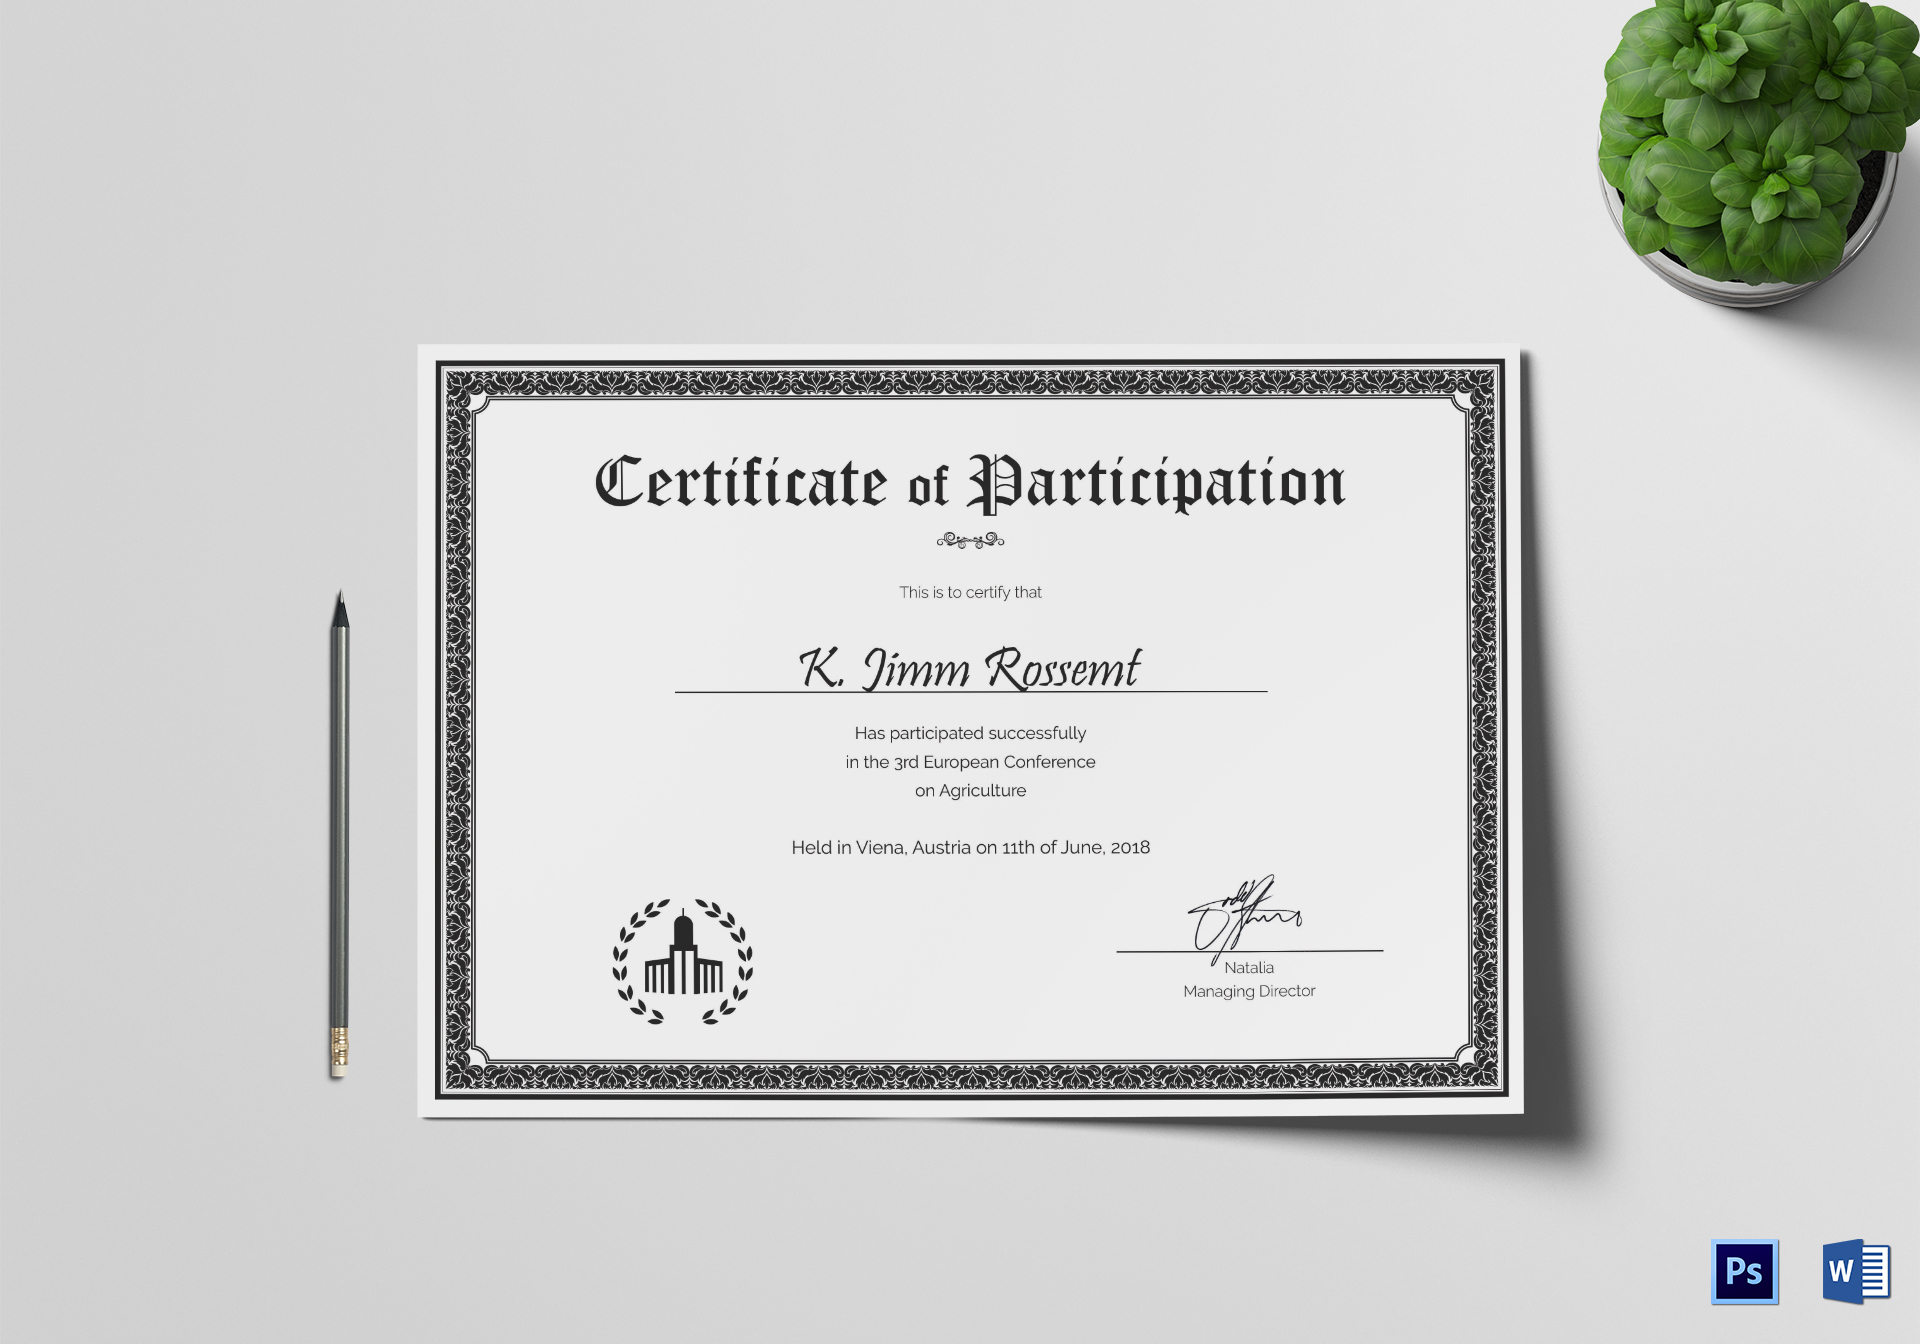 Conference Participation Certificate